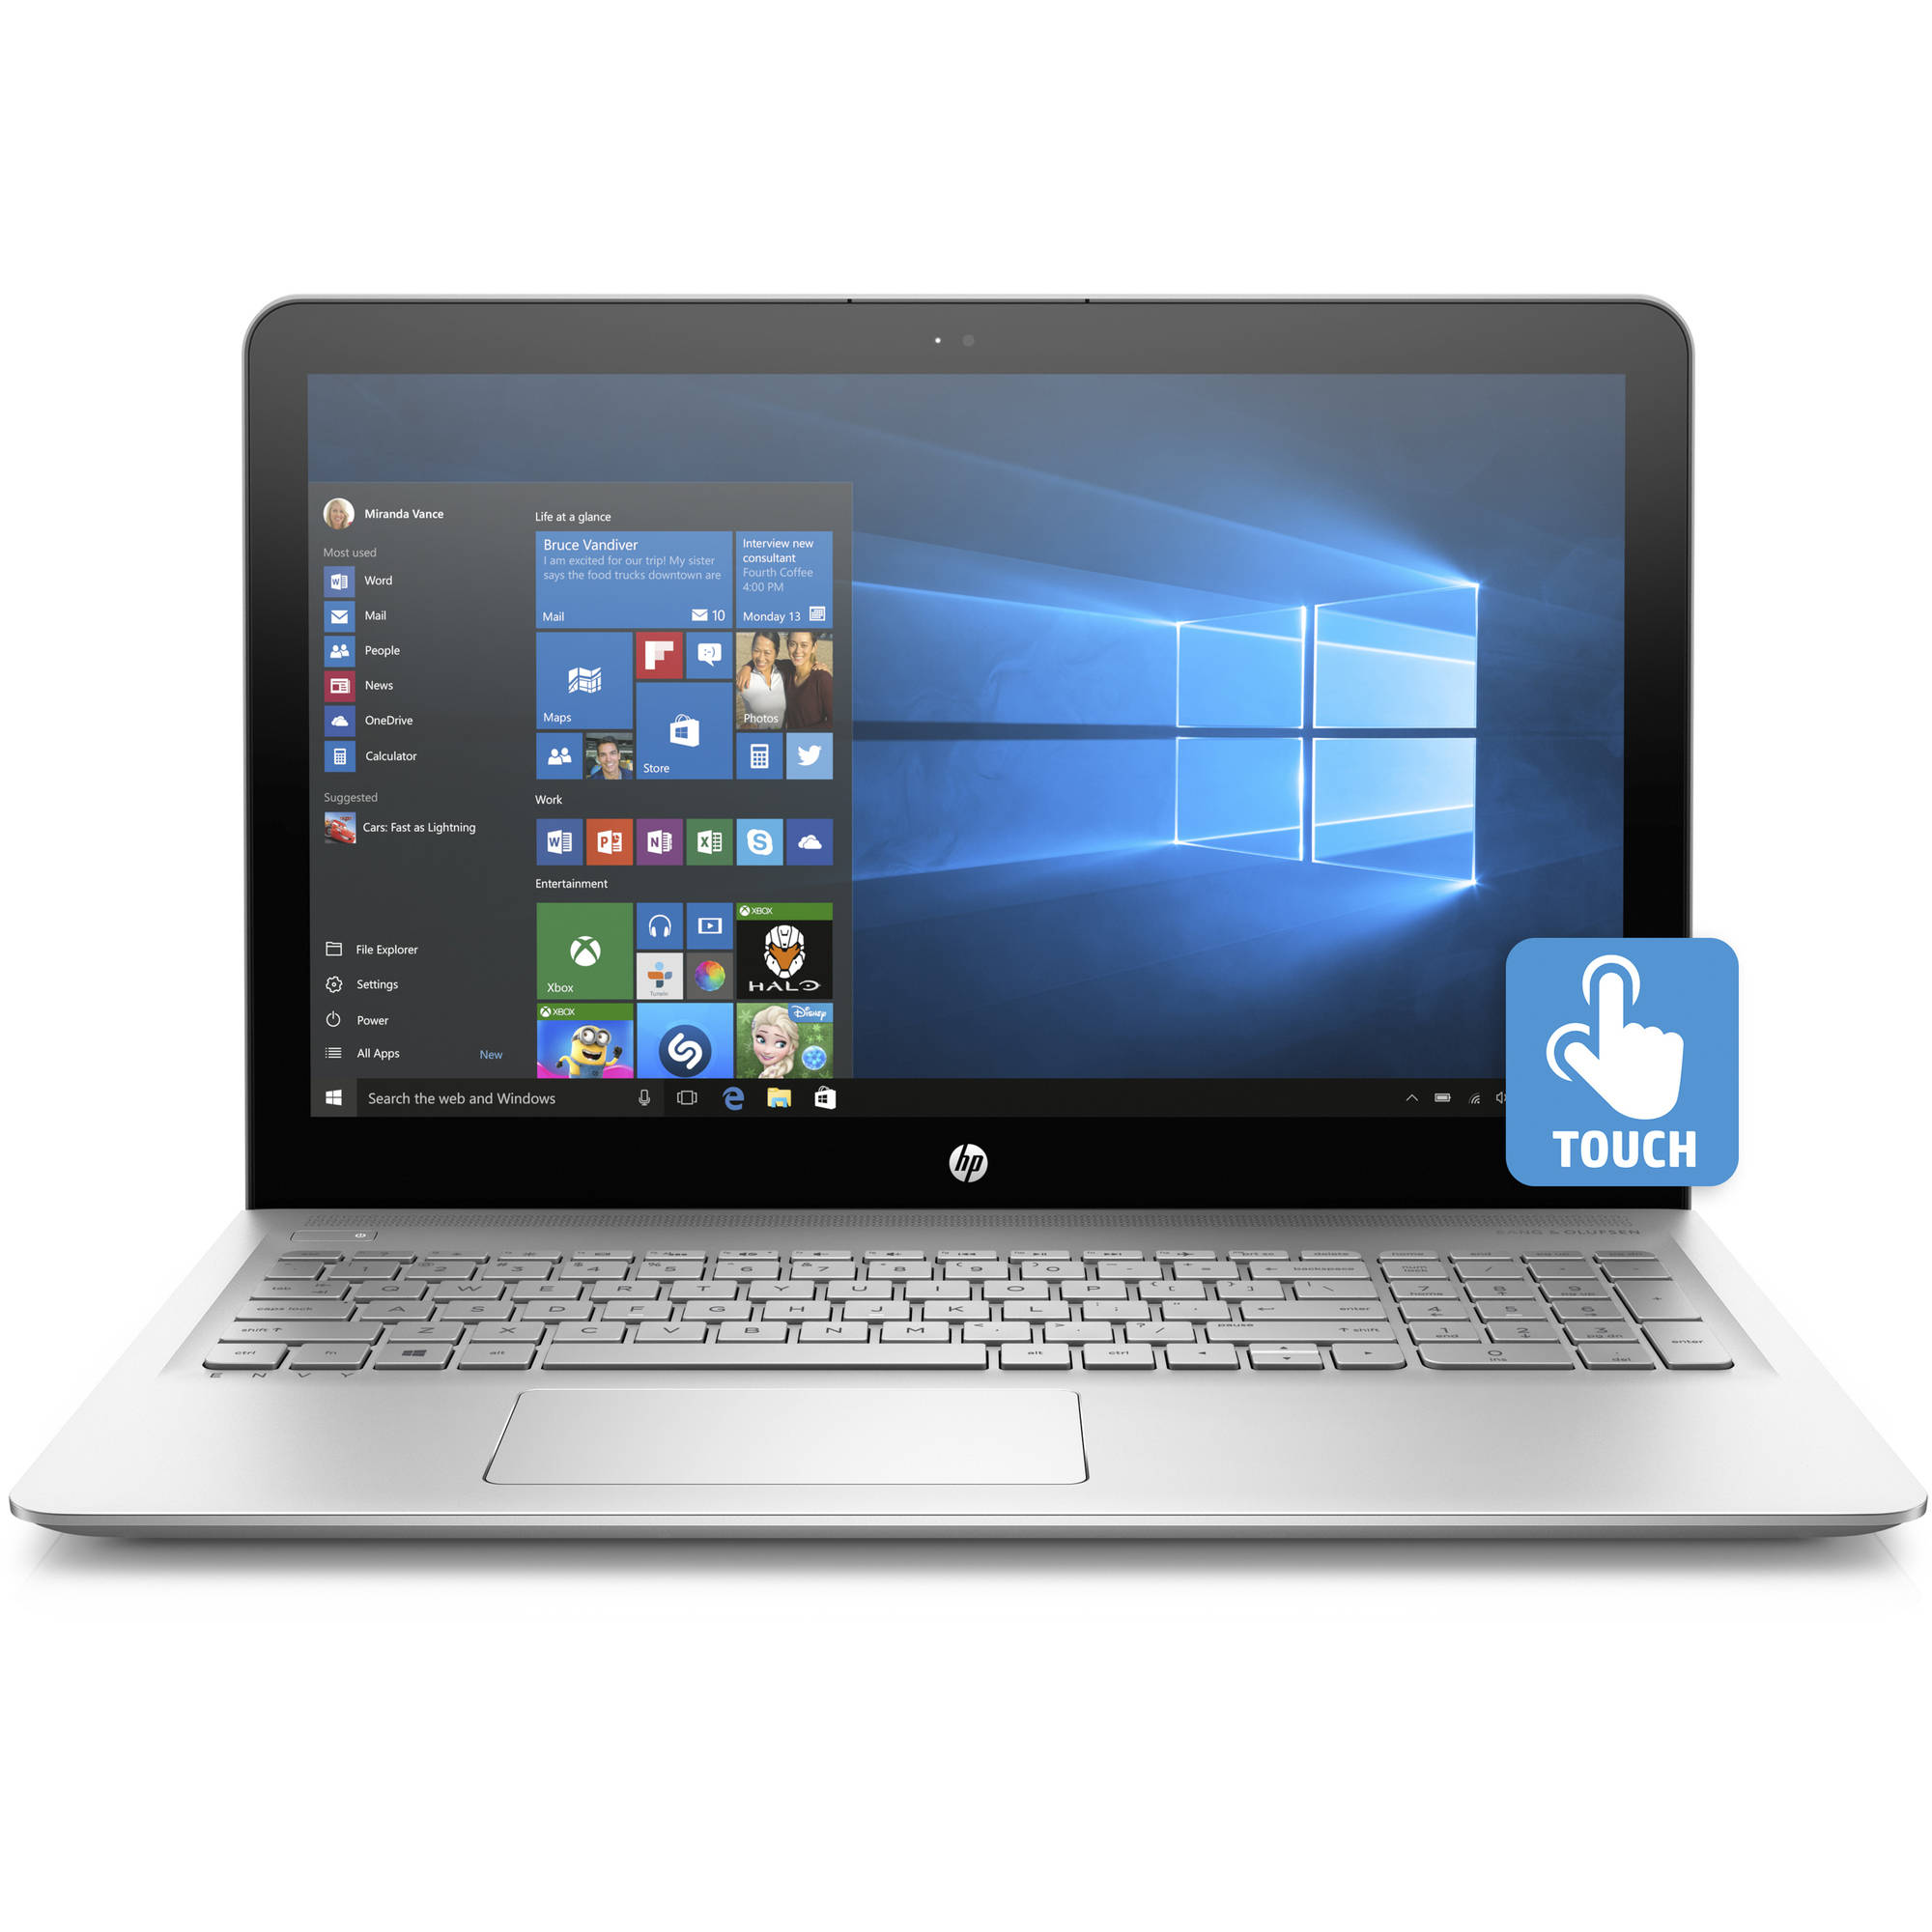 "Refurbished HP Envy 15-as014wm 15.6"" Laptop, Touchscreen, Windows 10 Home, Intel Core i7-6500U Processor,... by HP"